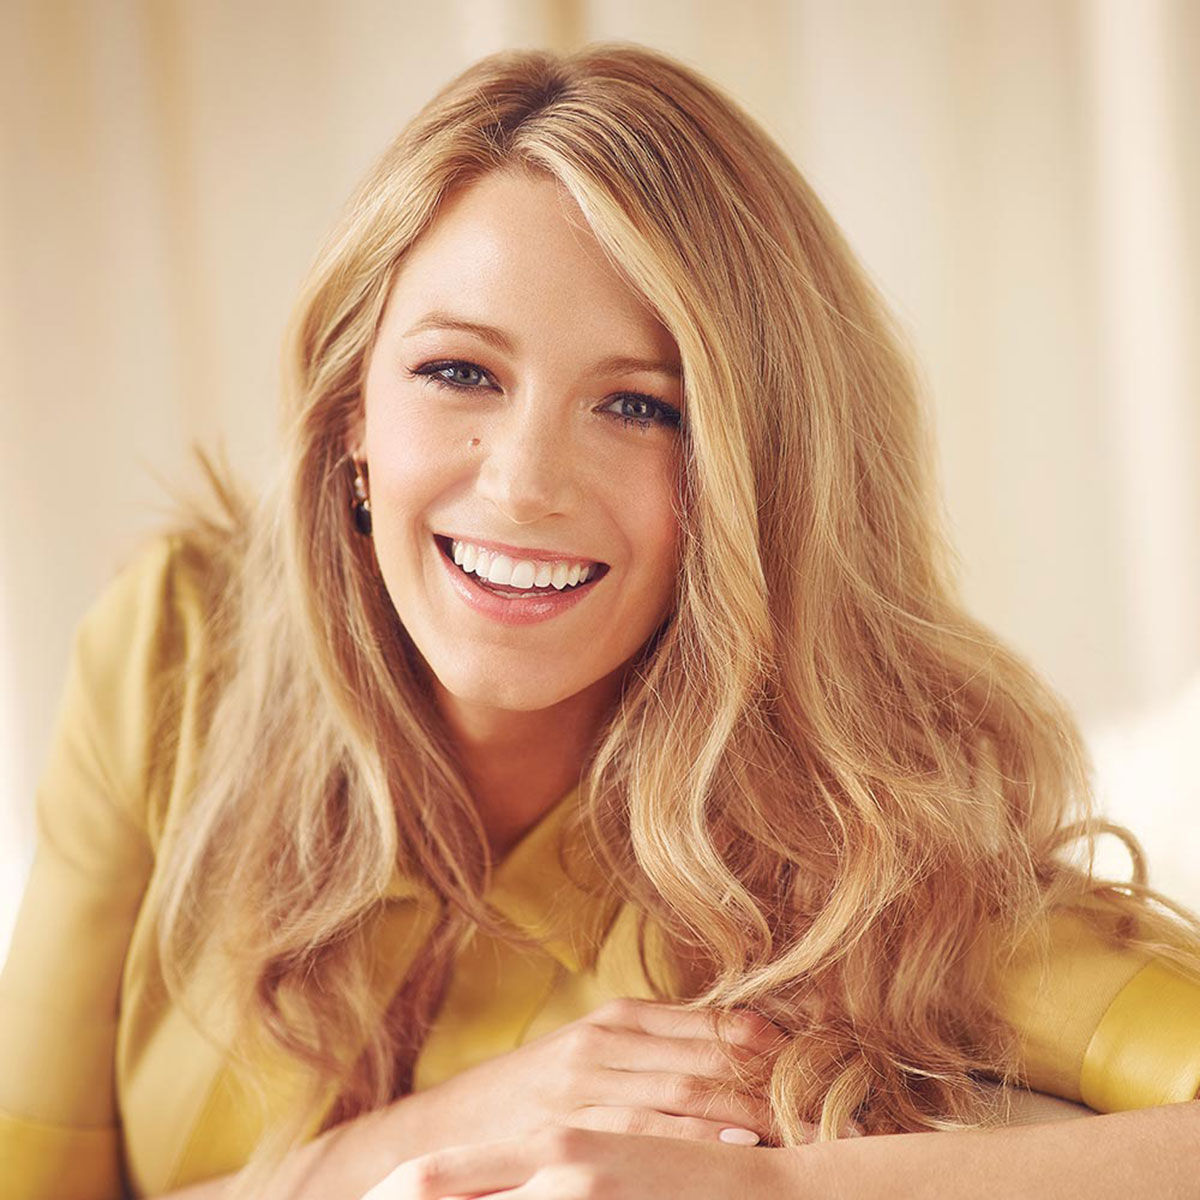 Blake Lively photoshoot for Gucci 2014